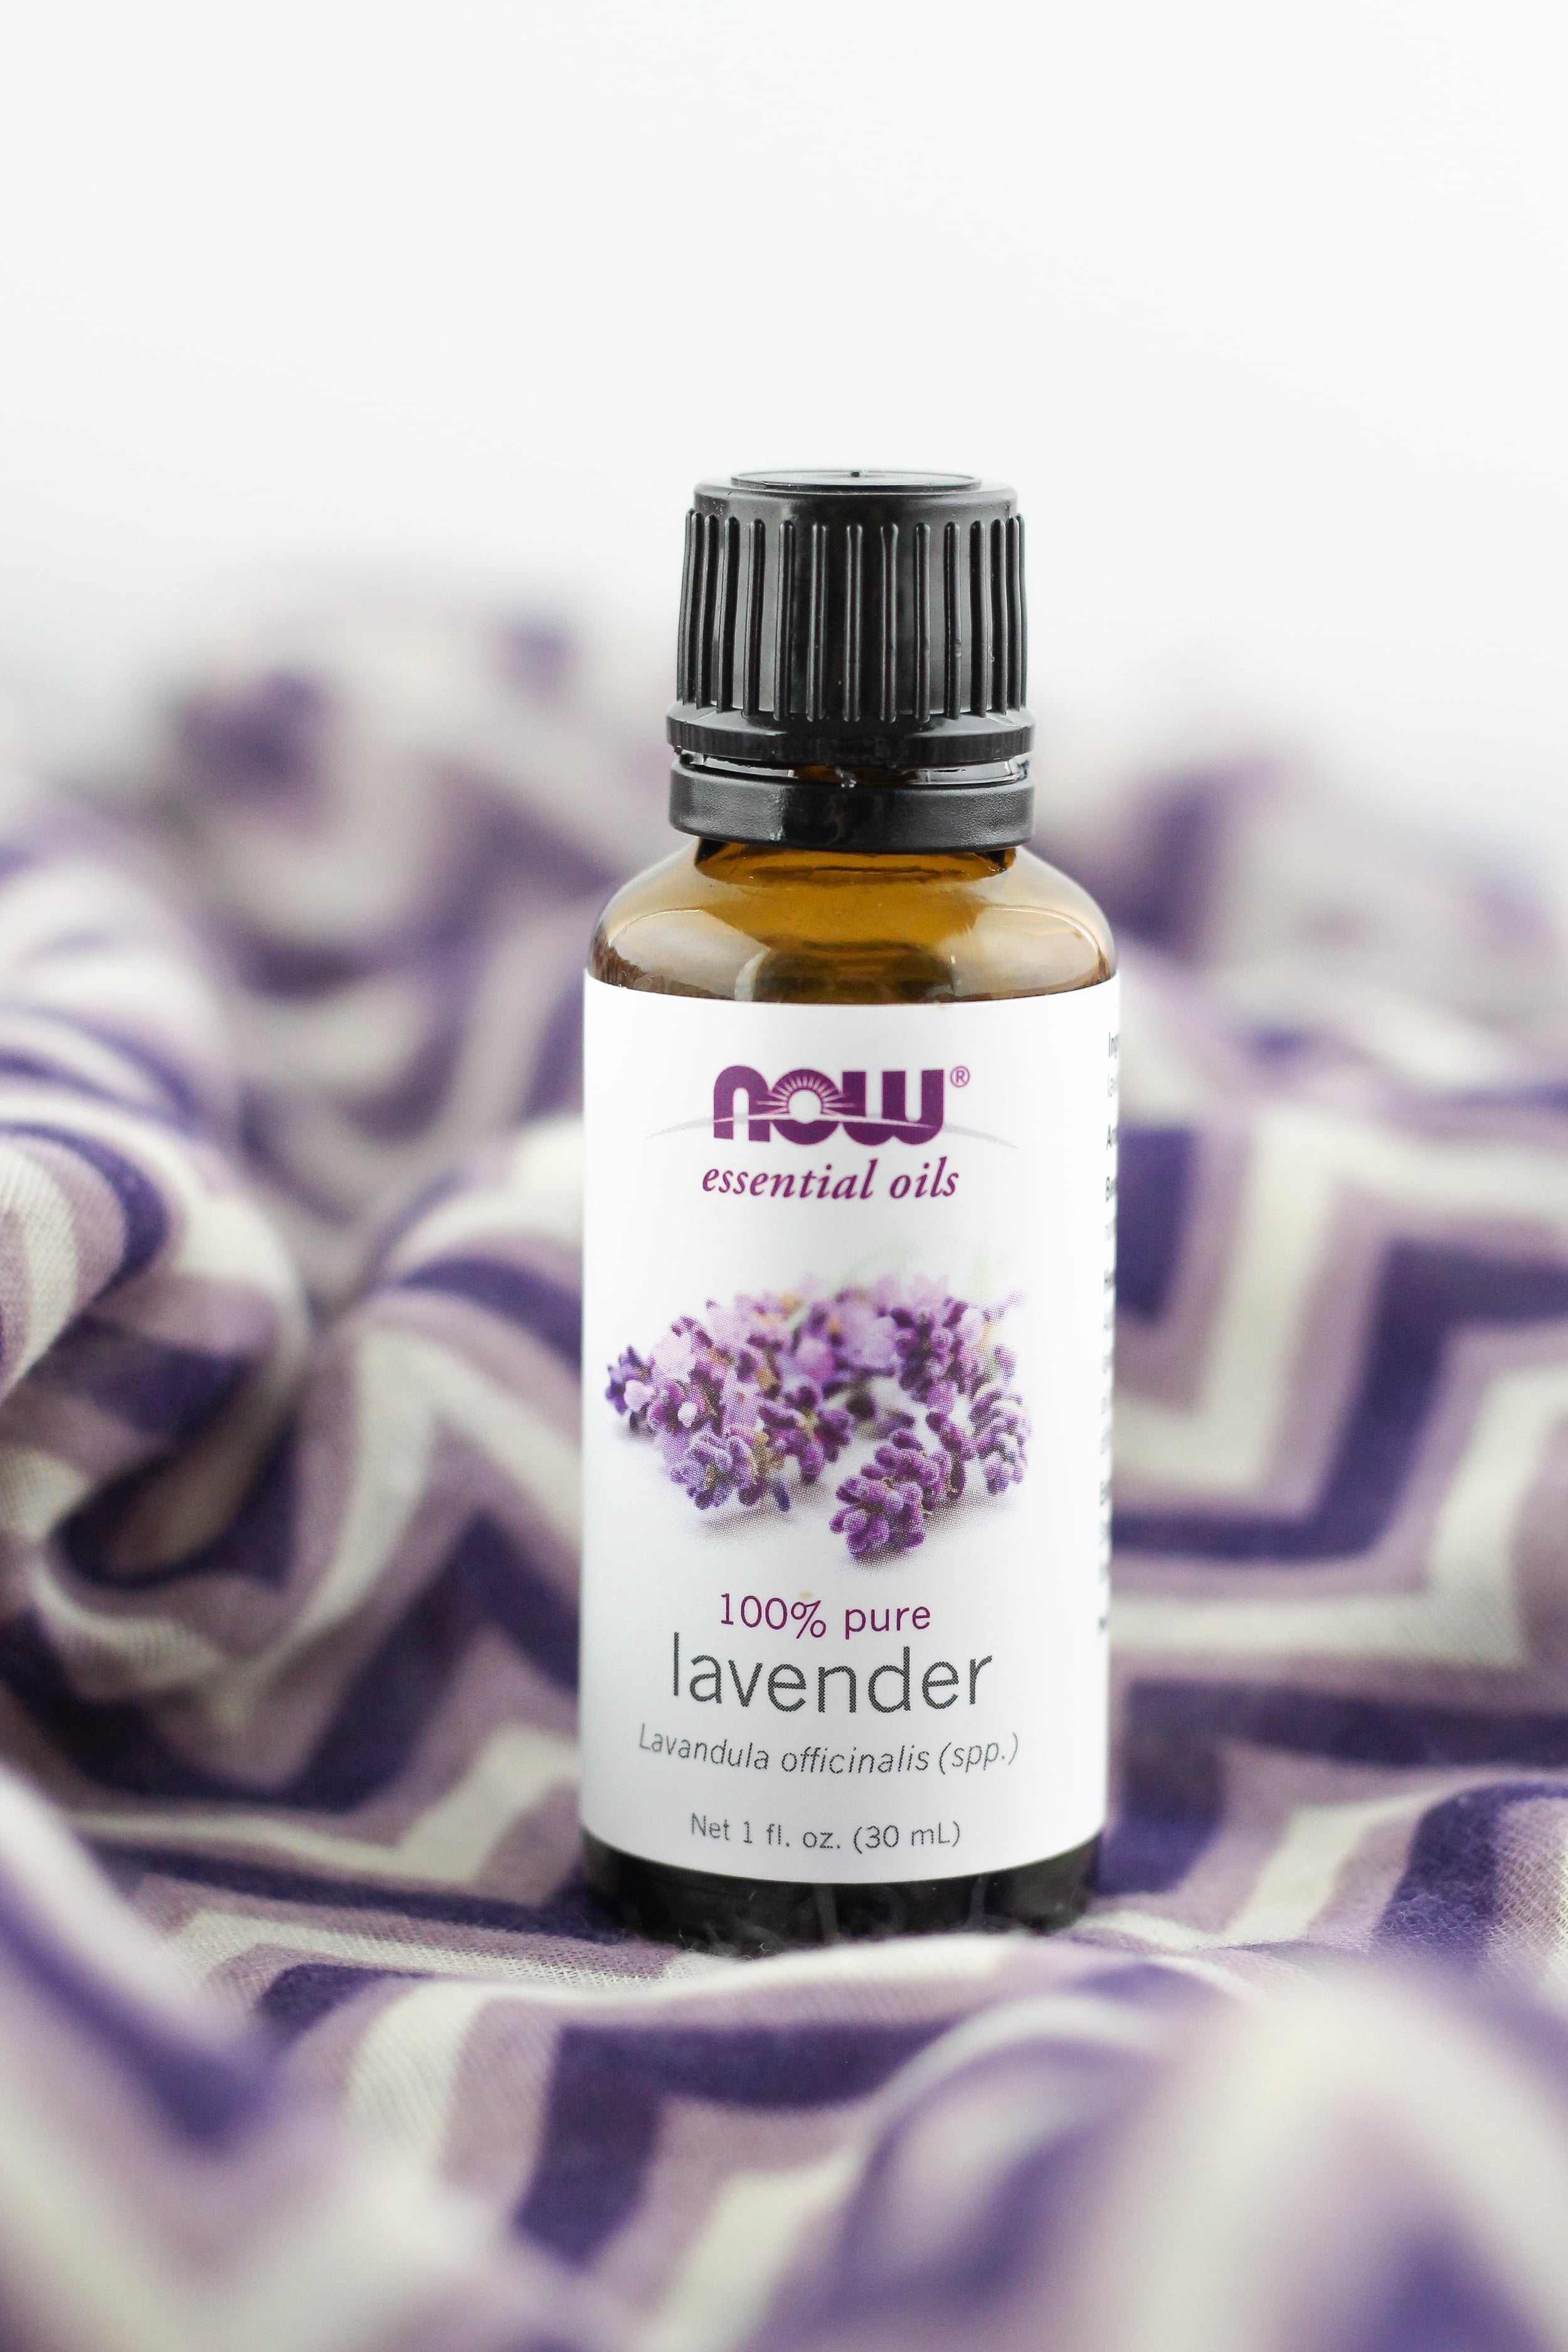 Decreased anxiety with lavender essential oil